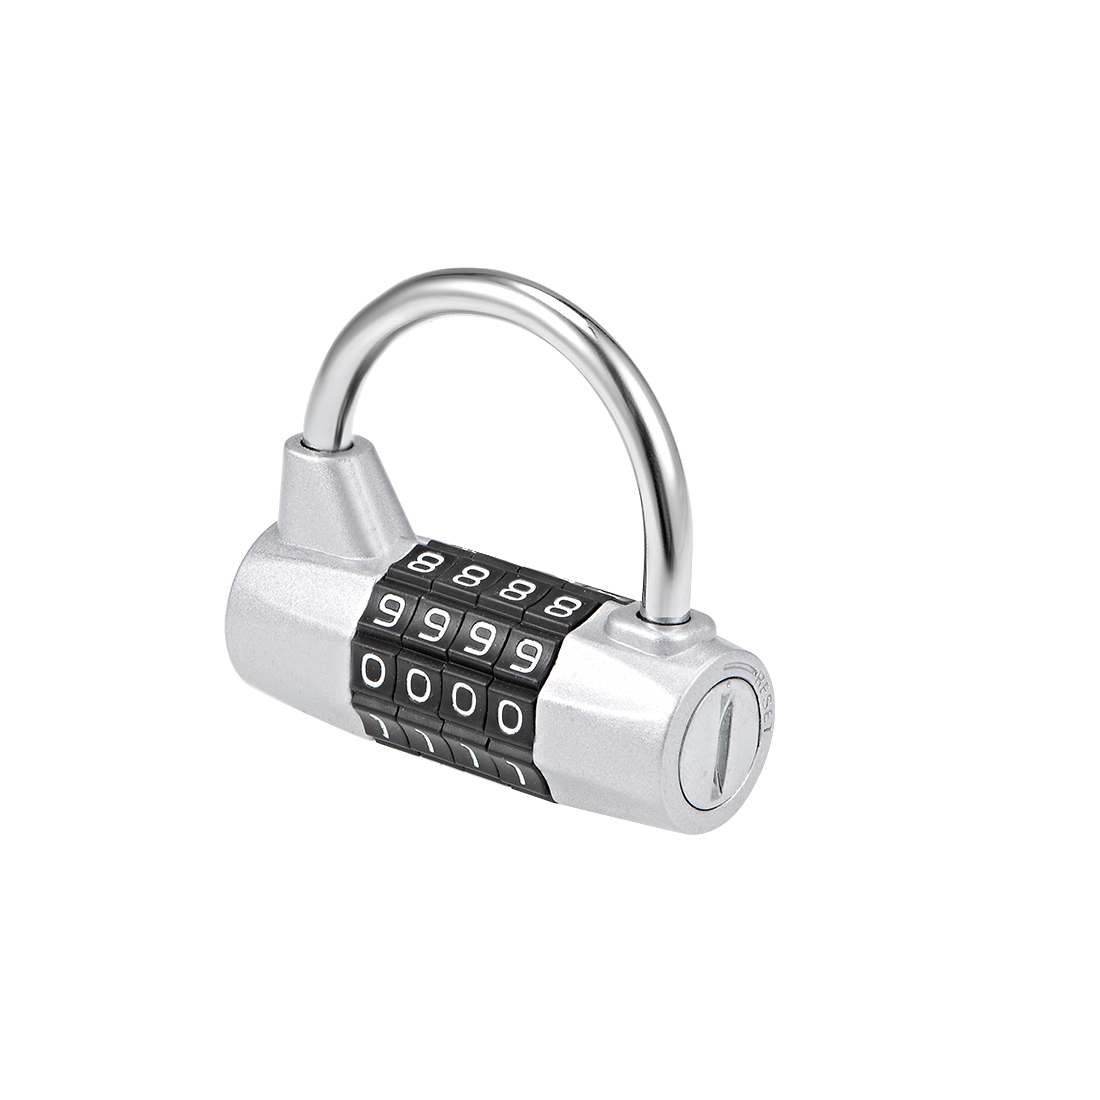 4-Digit Combination Padlock 1/5-inch Shackle Resettable Locker Lock Silver